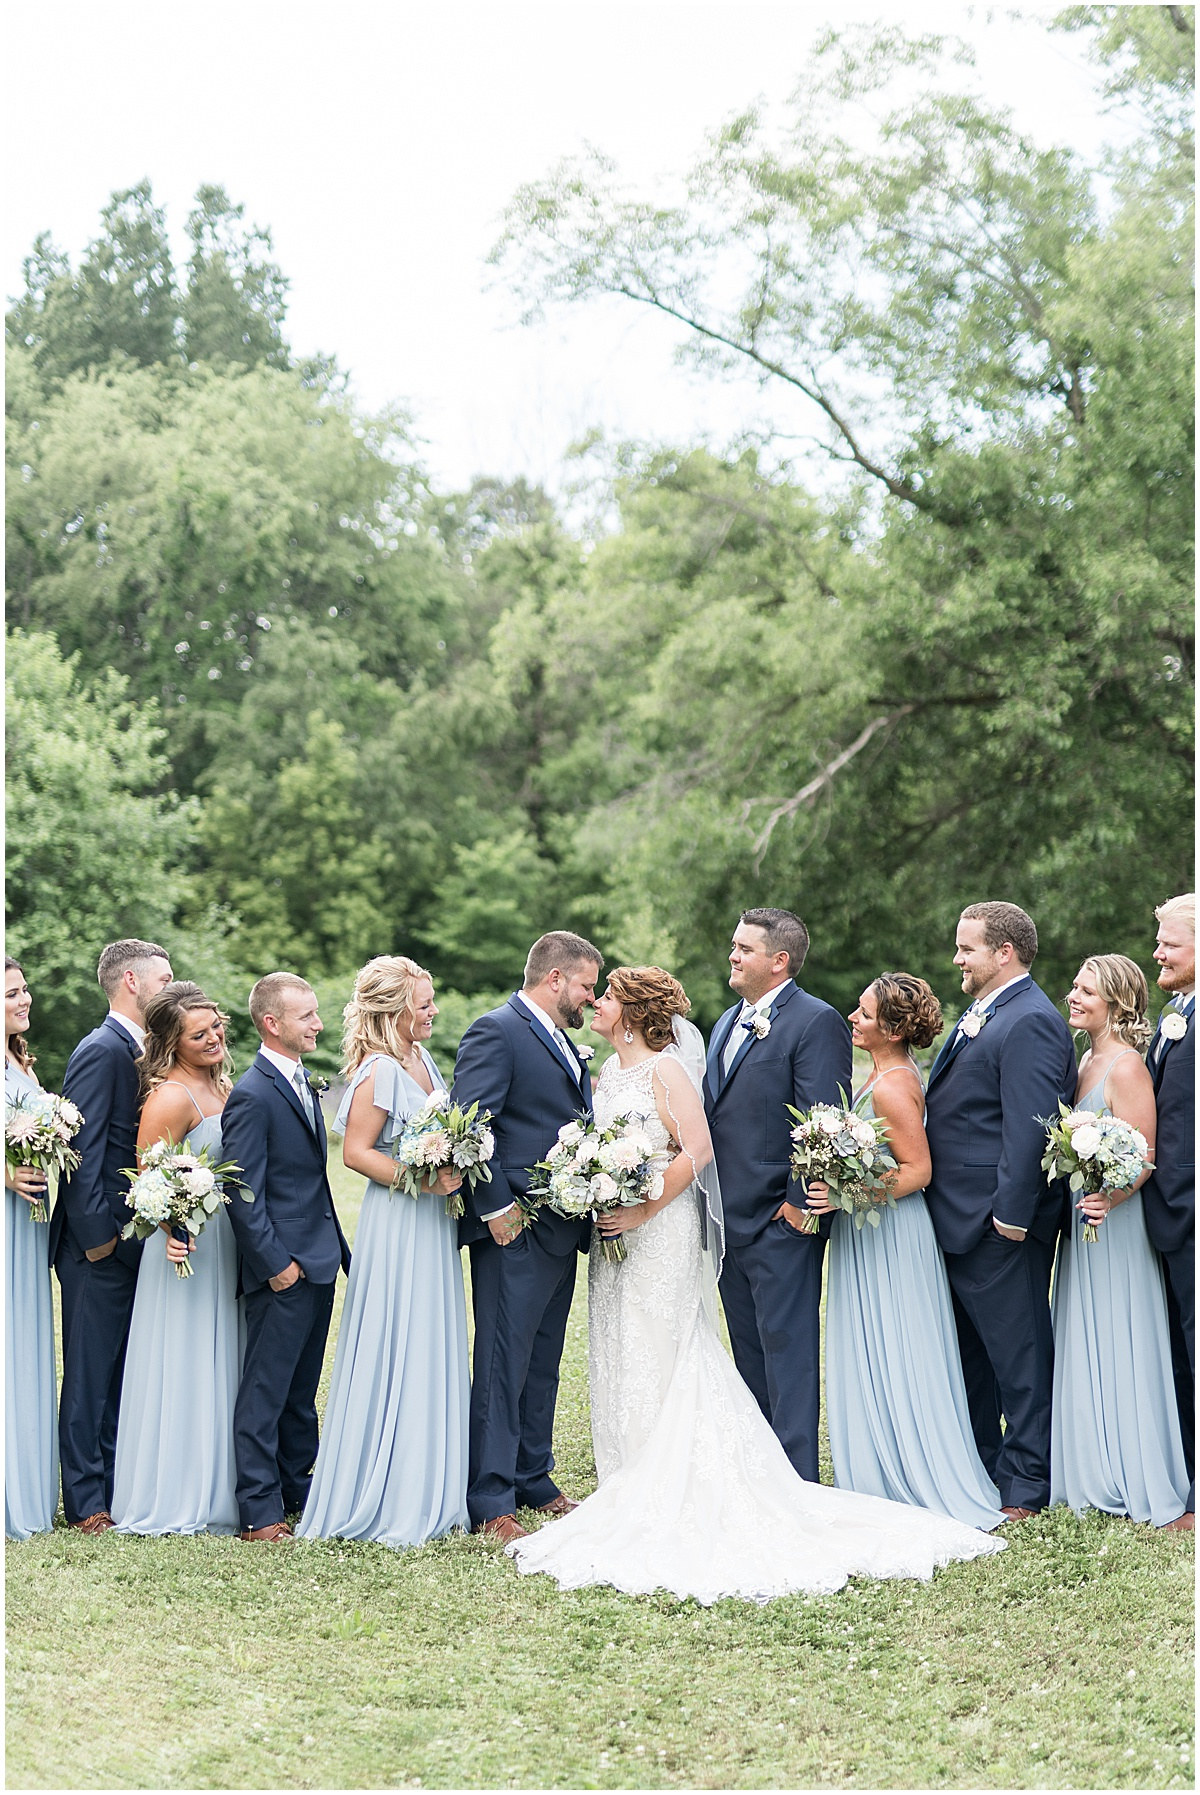 Bridal party photo at a wedding at The Brandywine in Monticello, Indiana